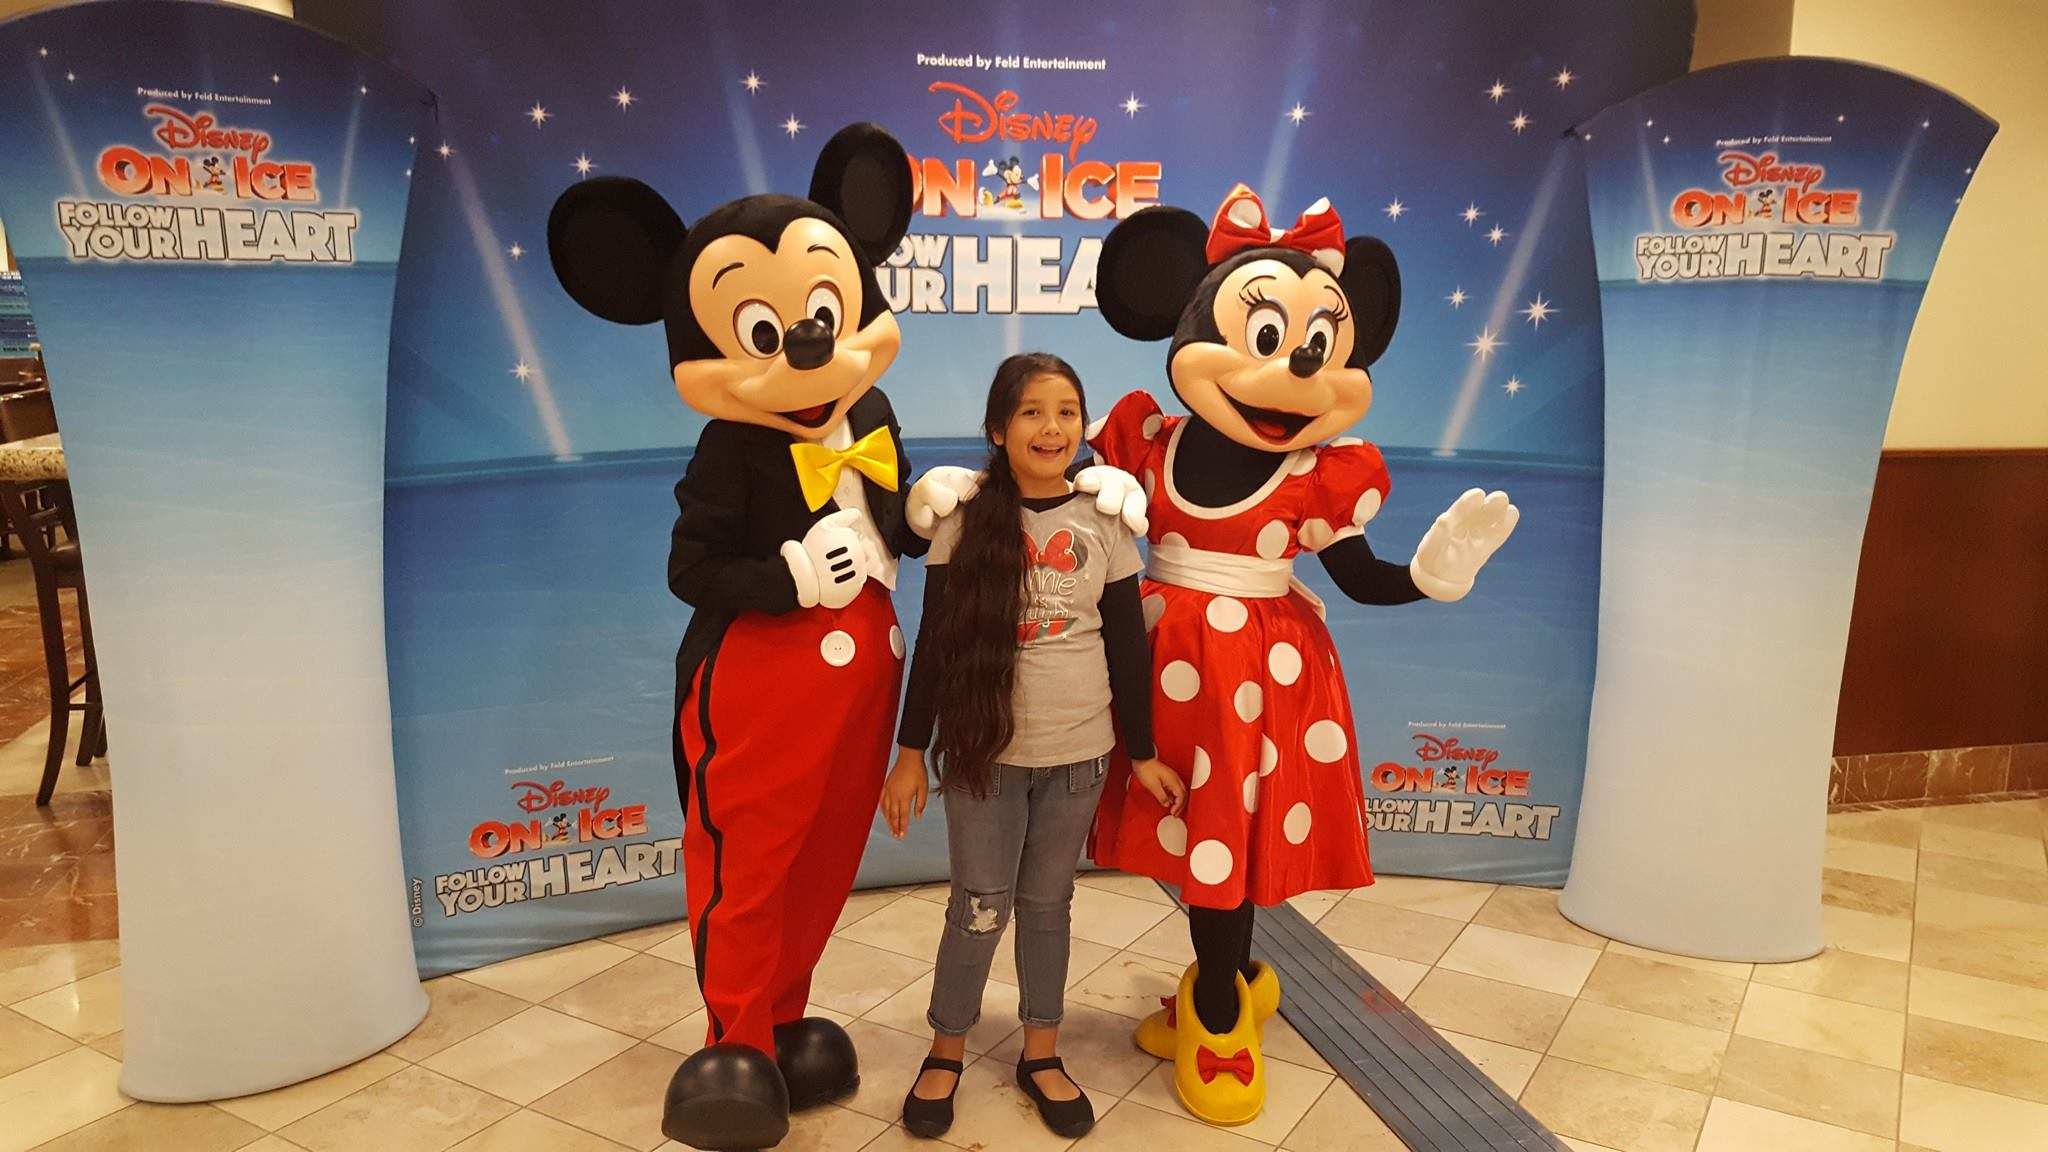 Disney On Ice Follow Your Heart (c) Cleverly catheryn